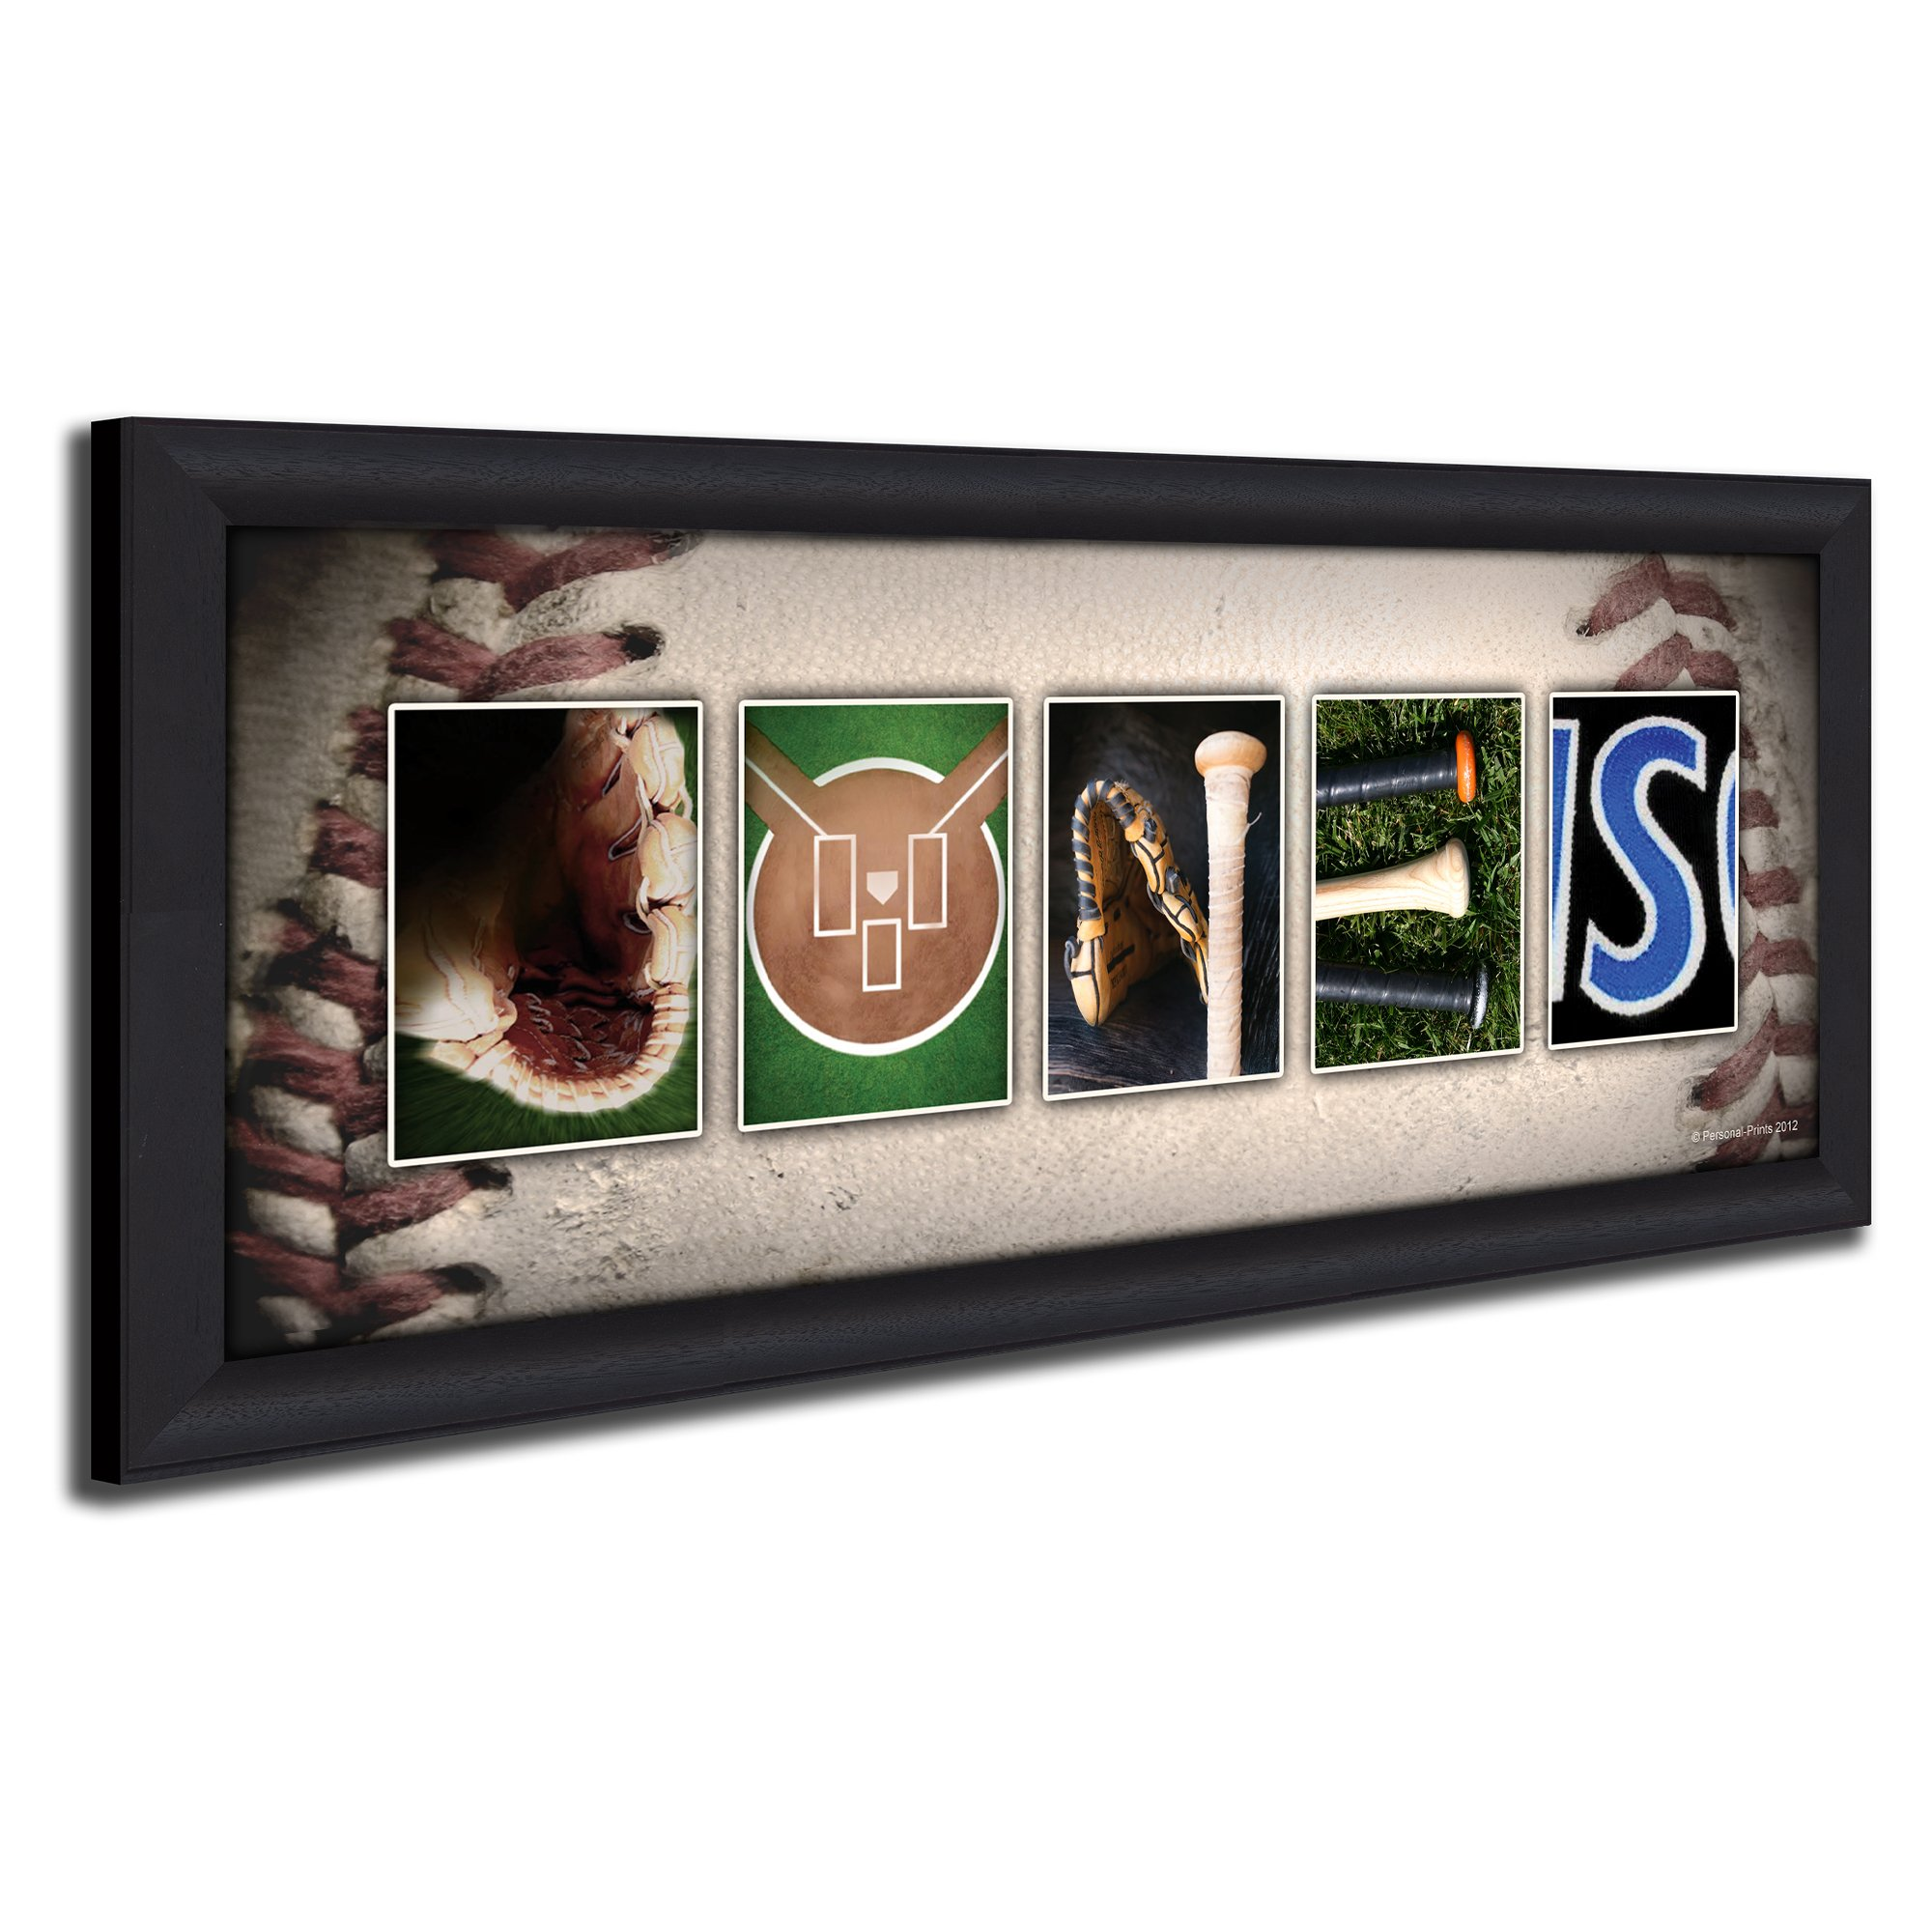 Framed Canvas - Personalized Baseball Name Art Print for man cave, boys room, or office! by Personal Prints